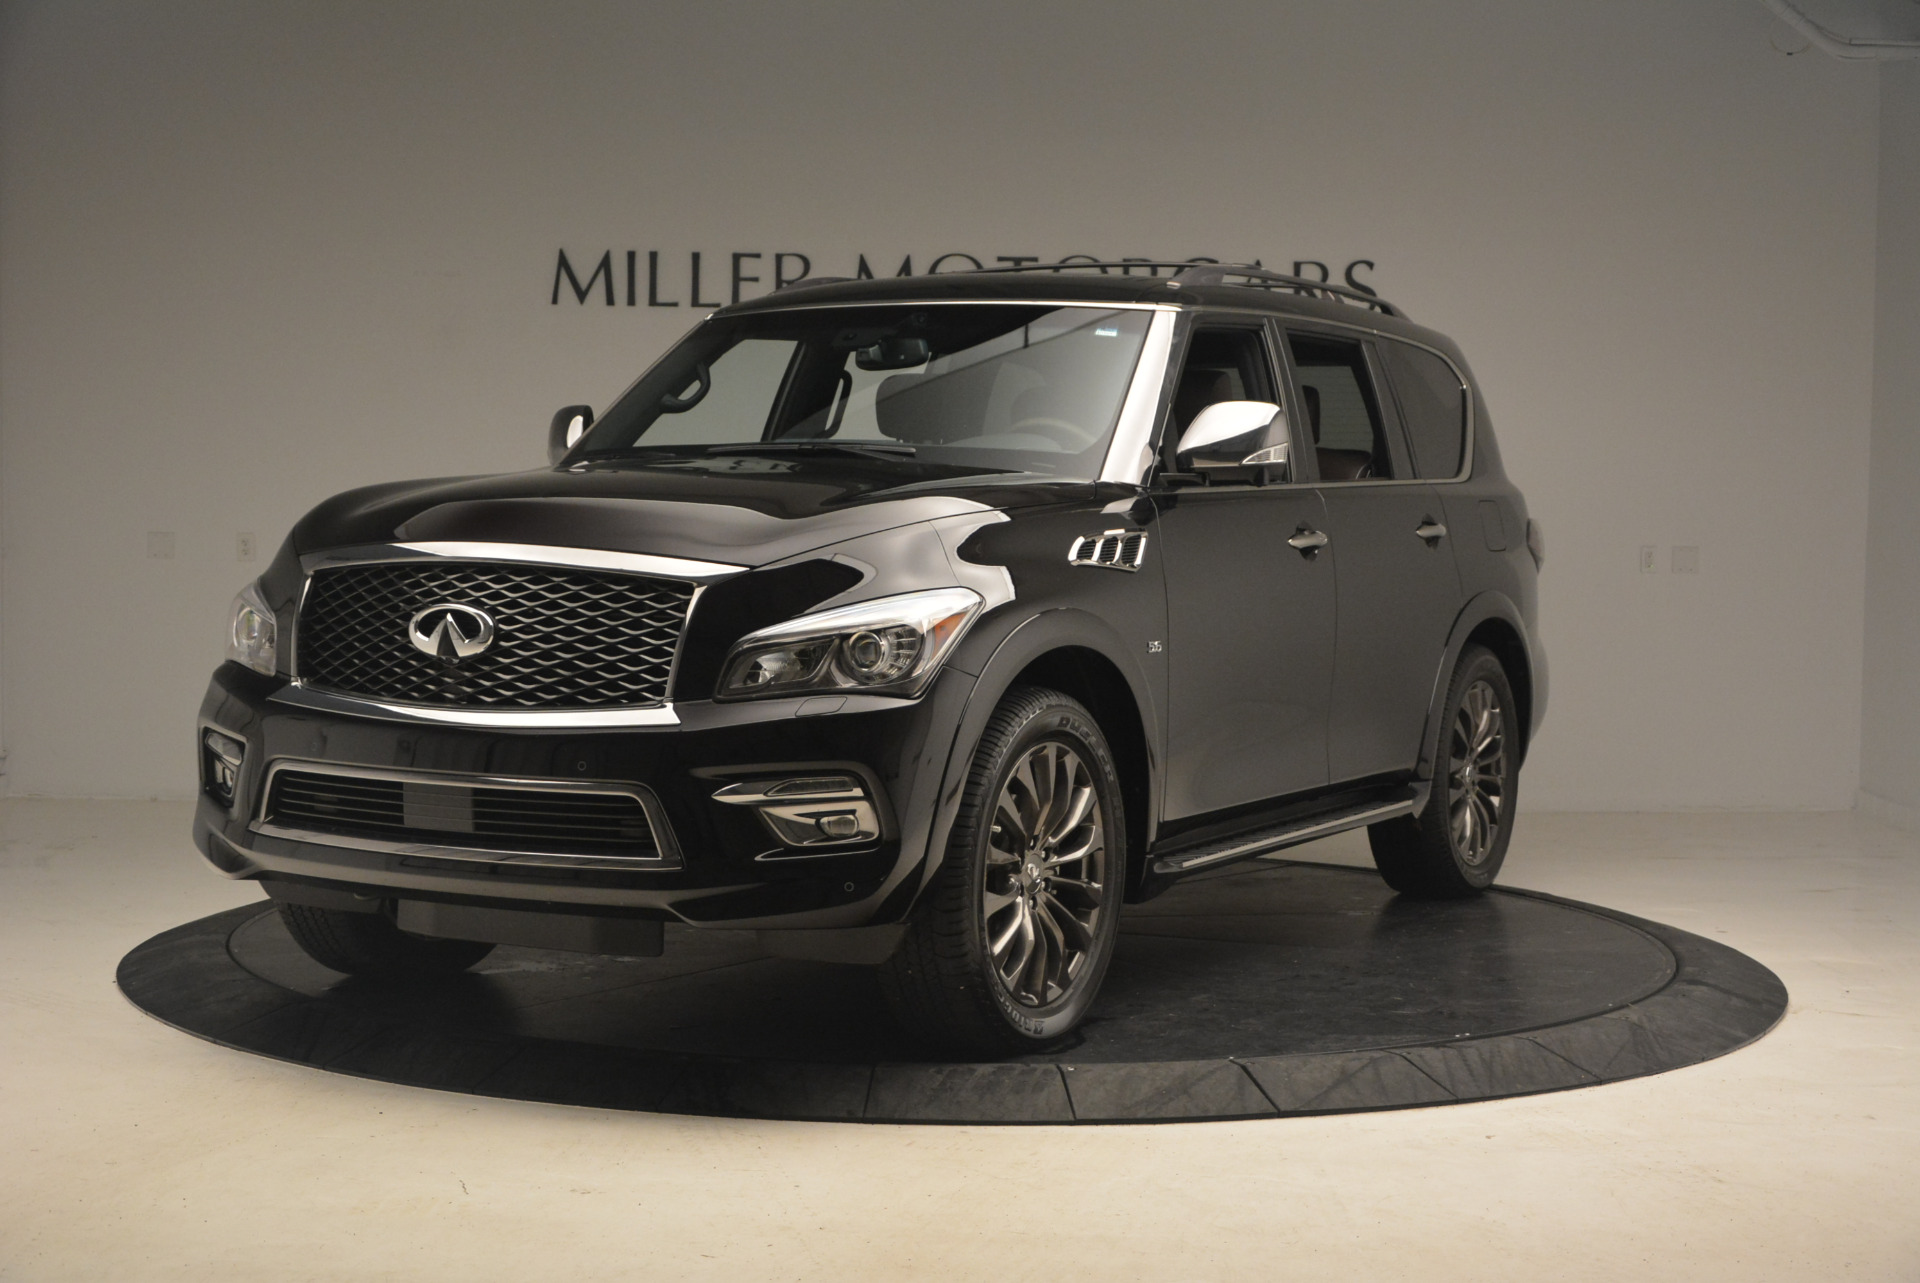 Used 2015 INFINITI QX80 Limited 4WD for sale Sold at Pagani of Greenwich in Greenwich CT 06830 1